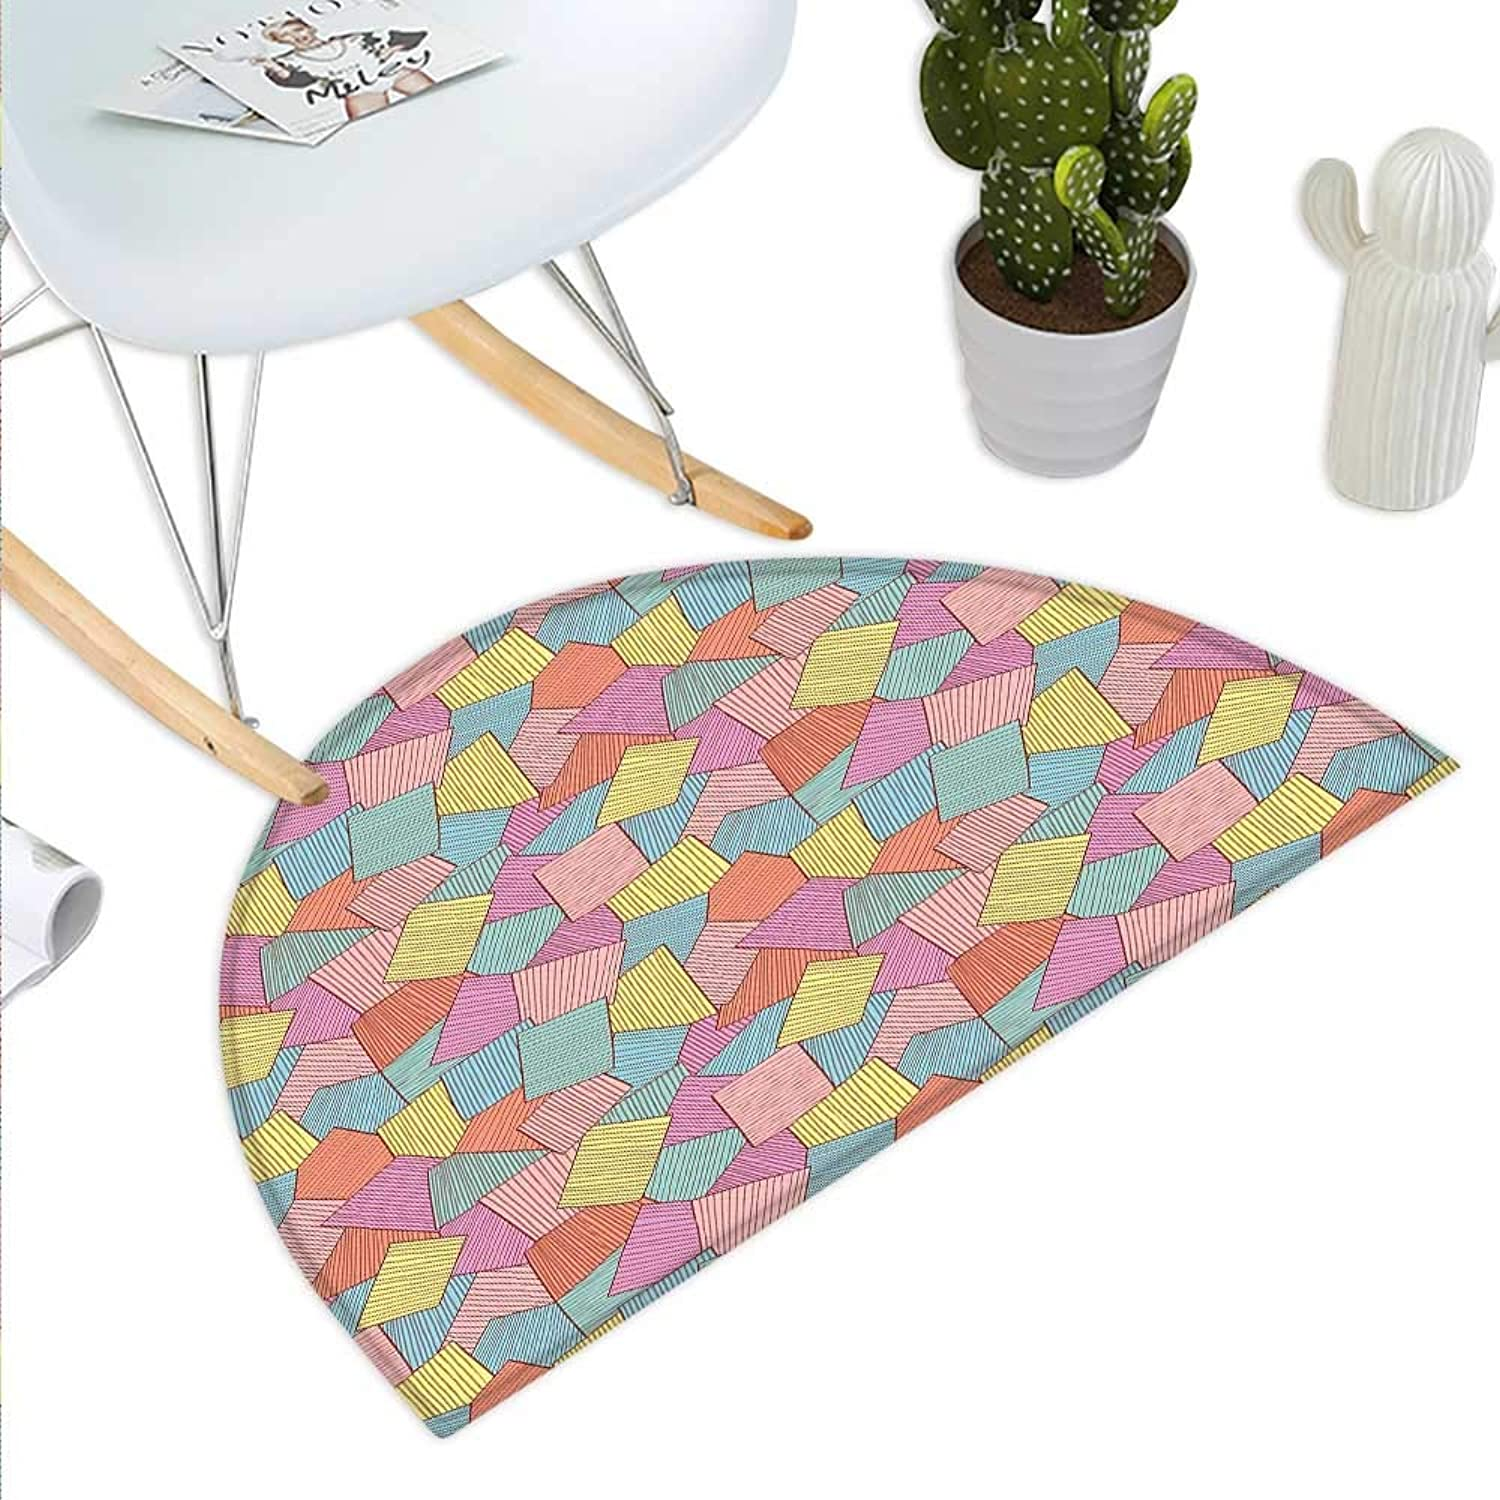 Geometric Semicircle Doormat Abstract Tile Pattern with Thin Stripes colorful Vintage Square Shapes Design Halfmoon doormats H 43.3  xD 64.9  Multicolor